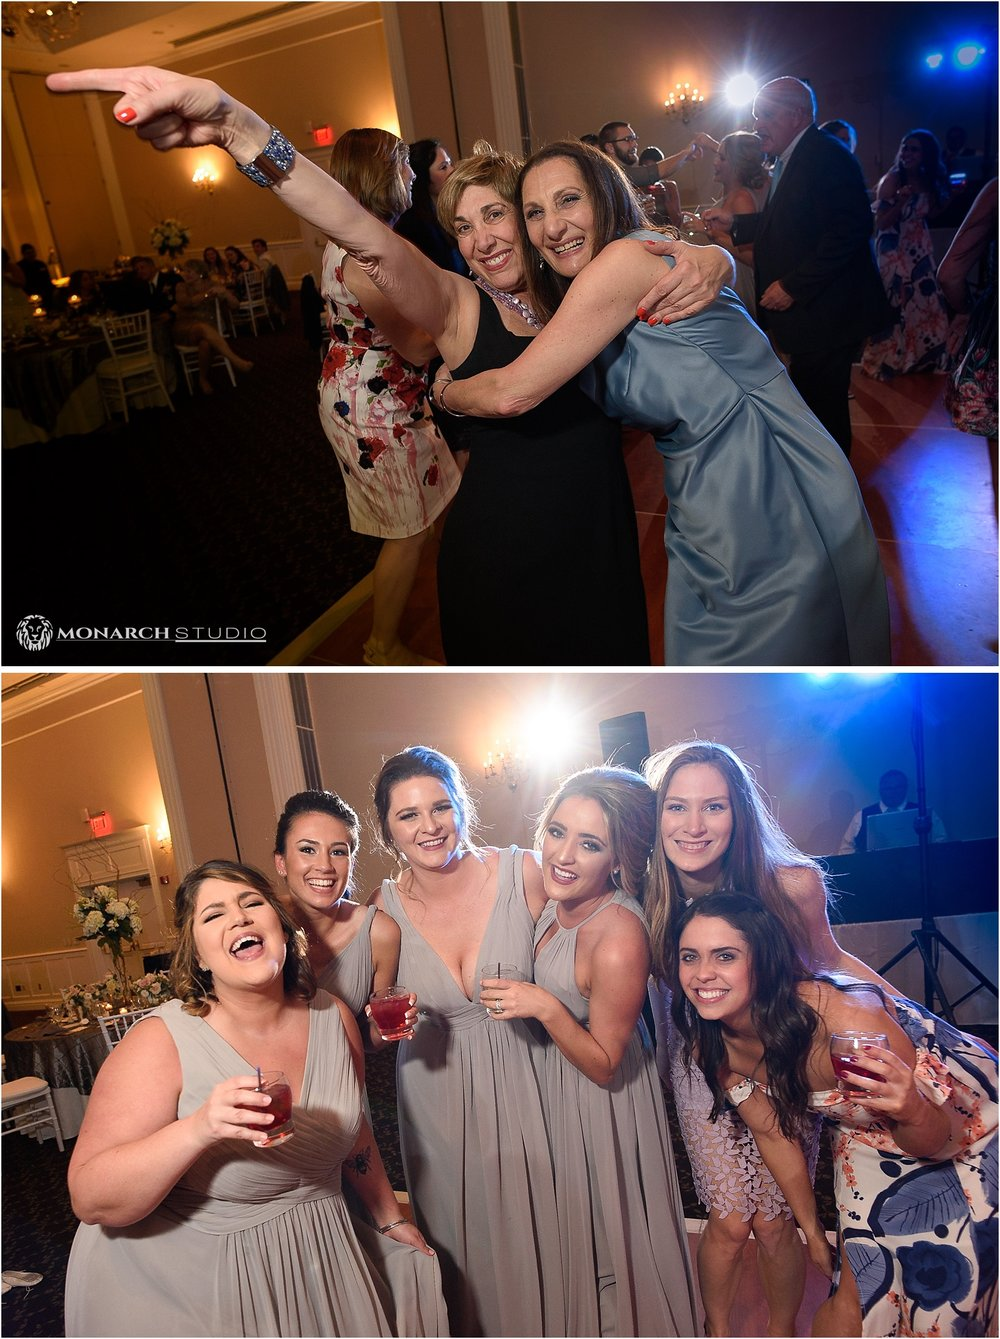 williamsburg-virginia-wedding-photographer-131.jpg